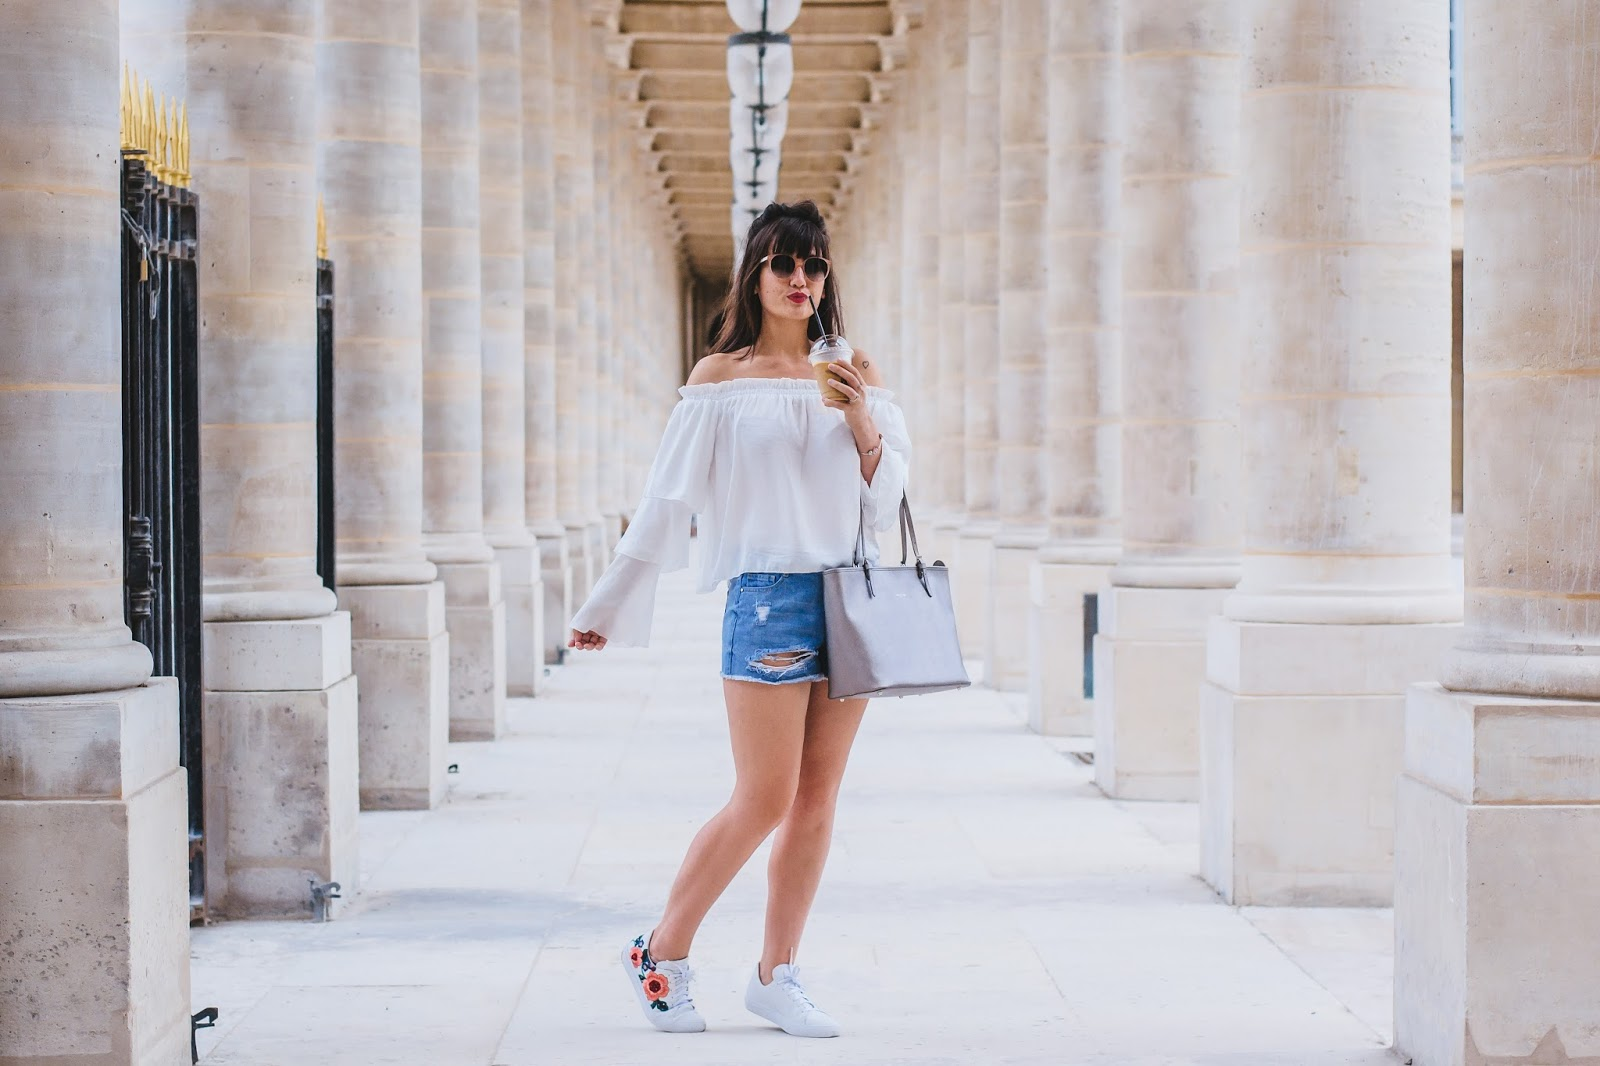 meetmeinparee-paris-blogger-fashion-streetstyle-mode-parisianfashionblogger